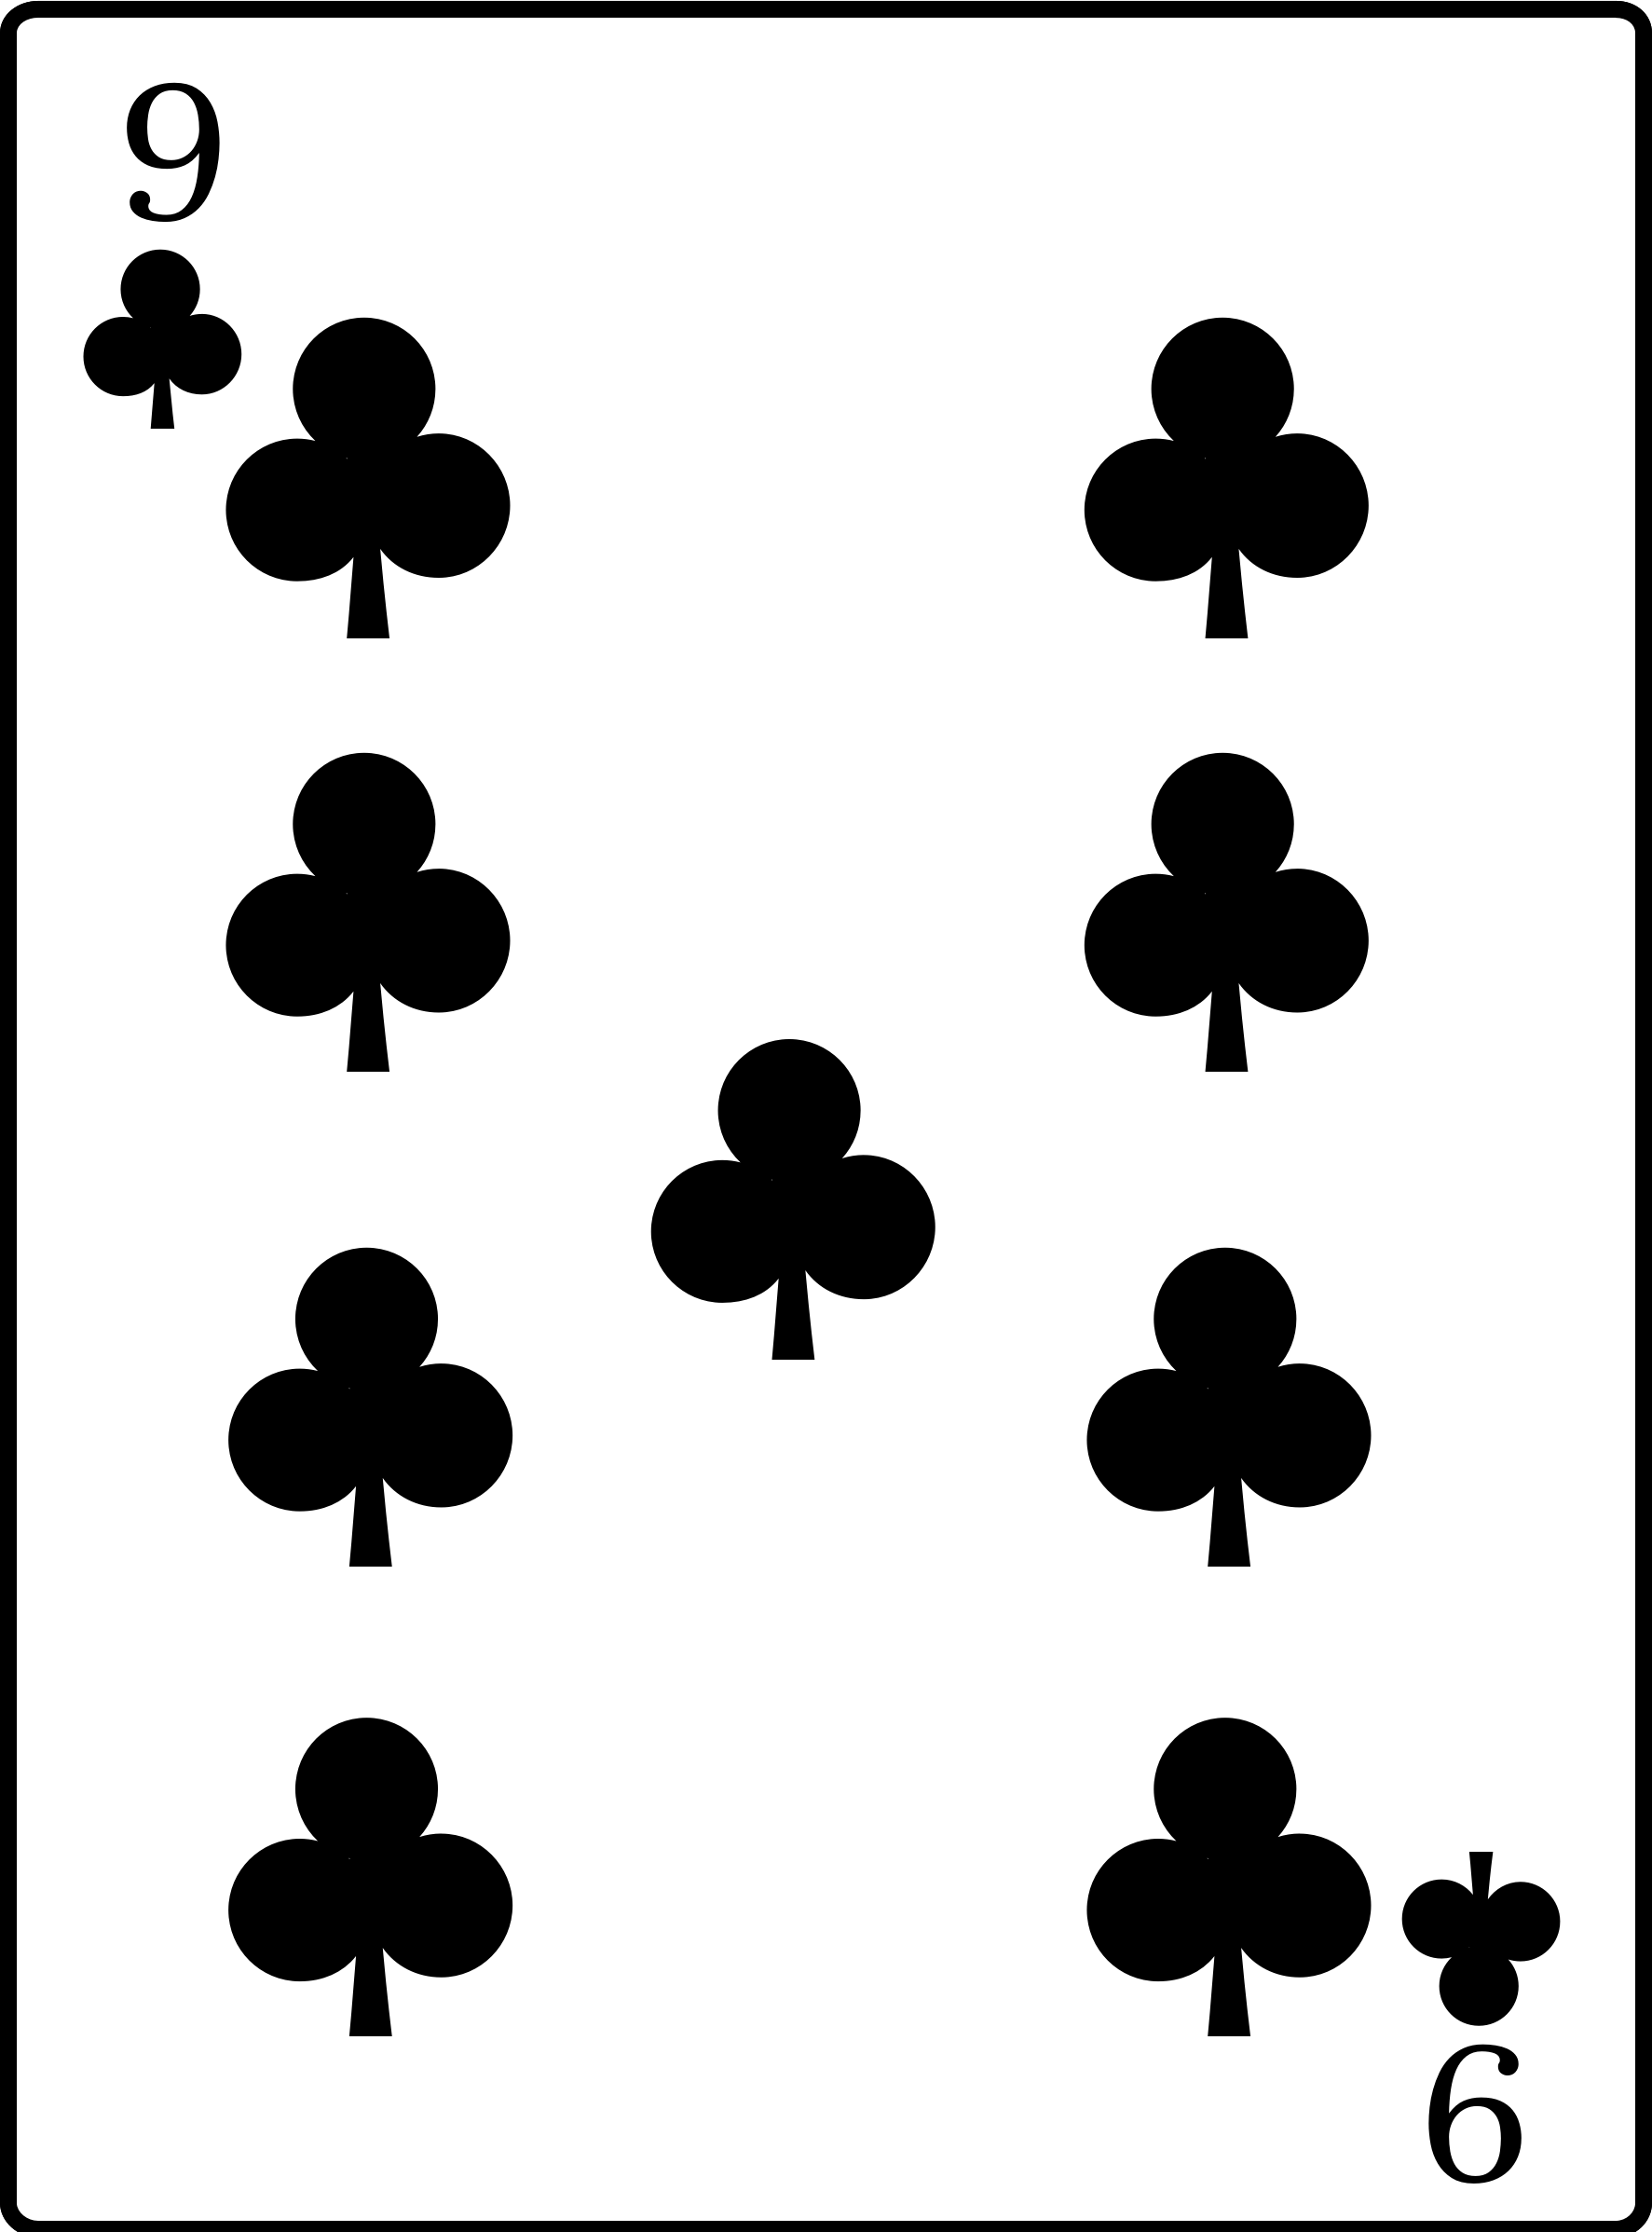 9 of Clubs by casino